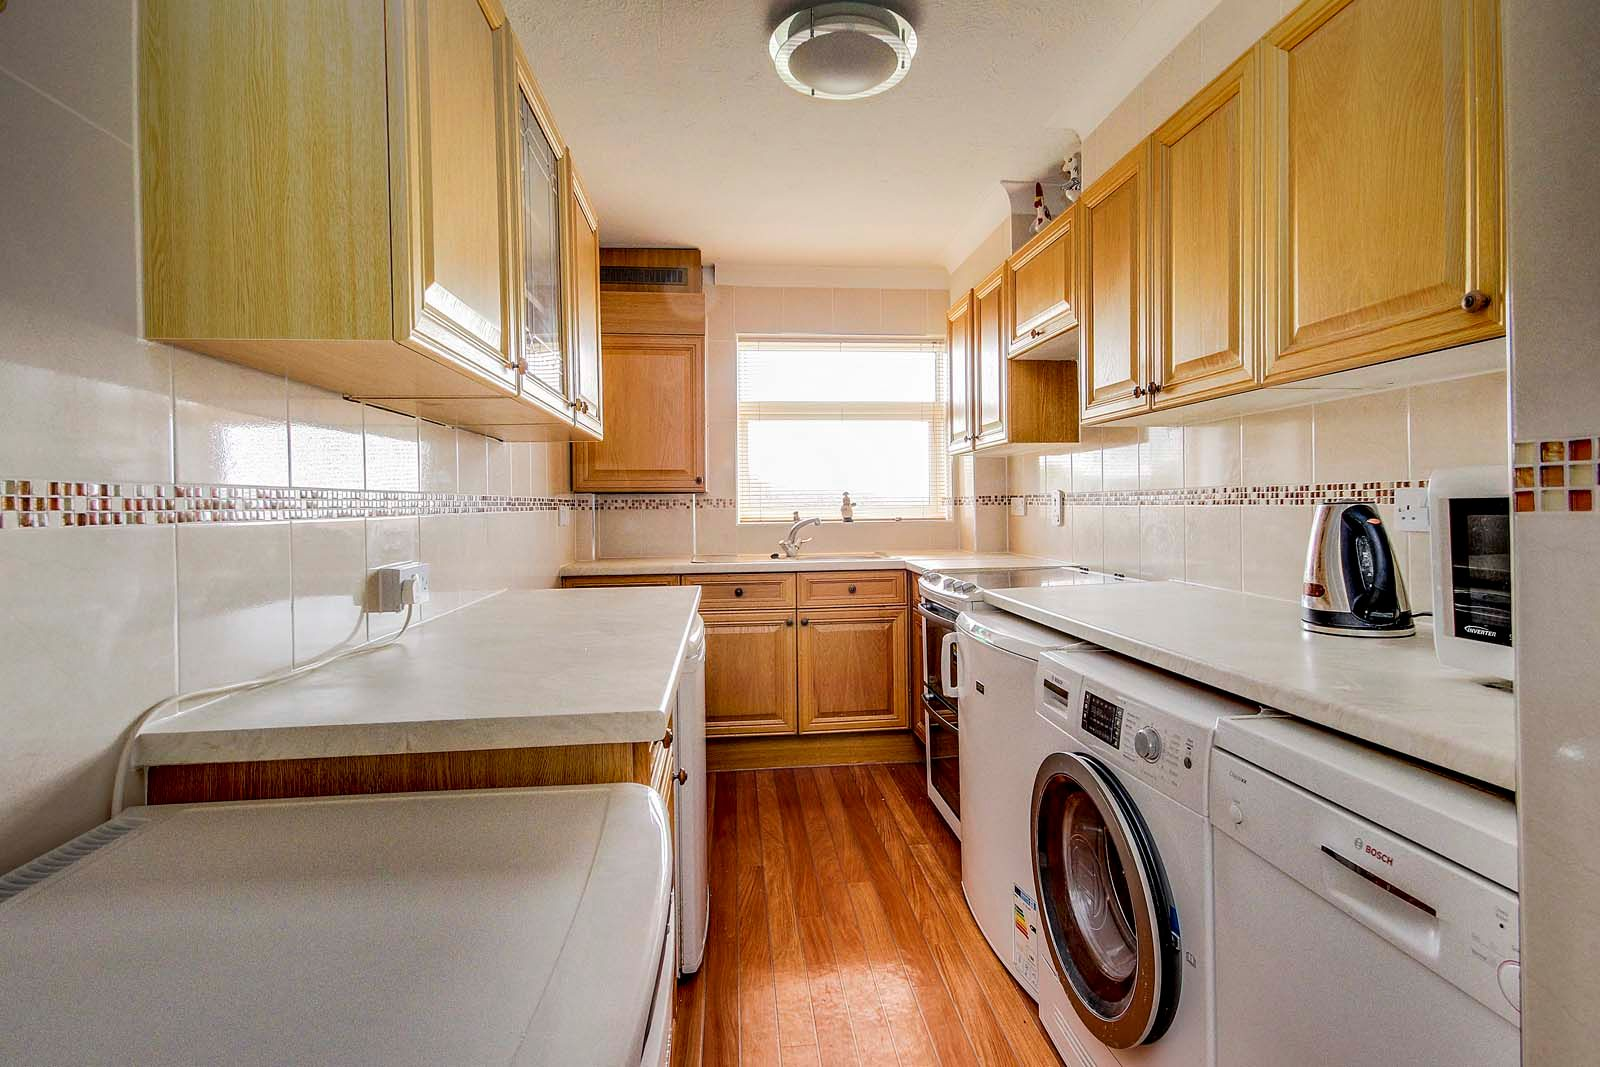 2 bed Apartment for sale in Rustington - Kitchen (Property Image 6)